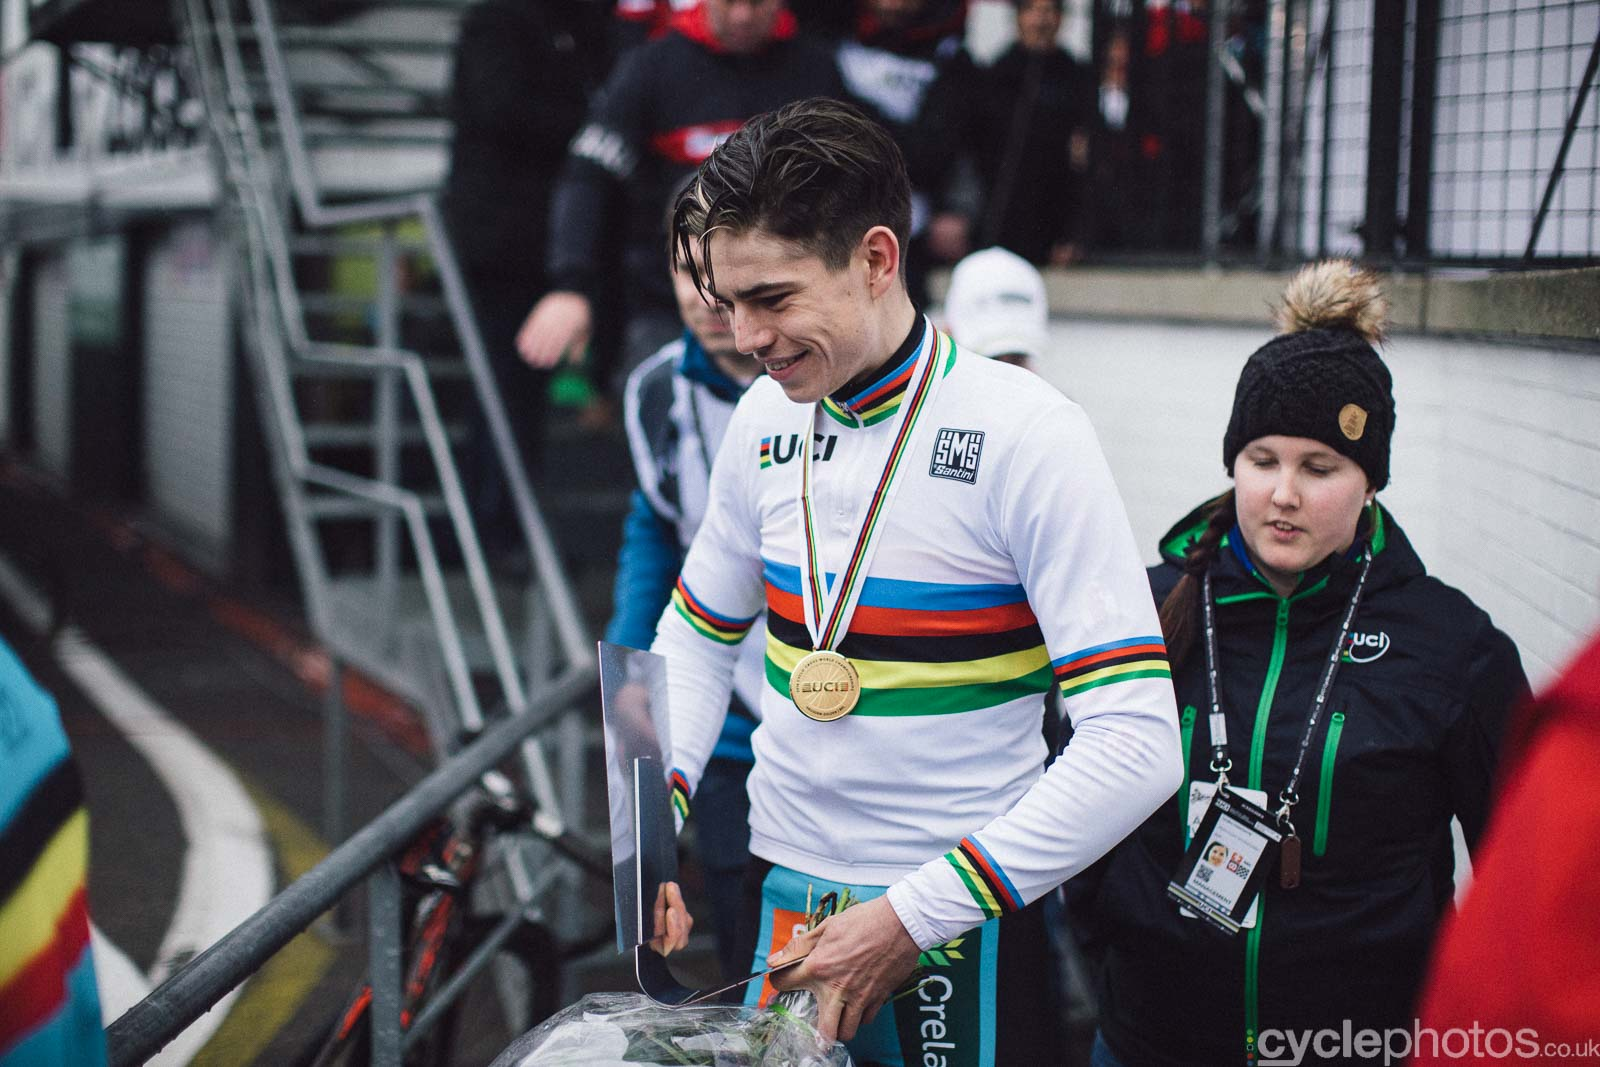 2016-cyclephotos-cyclocross-world-championships-zolder-162823-wout-van-aert